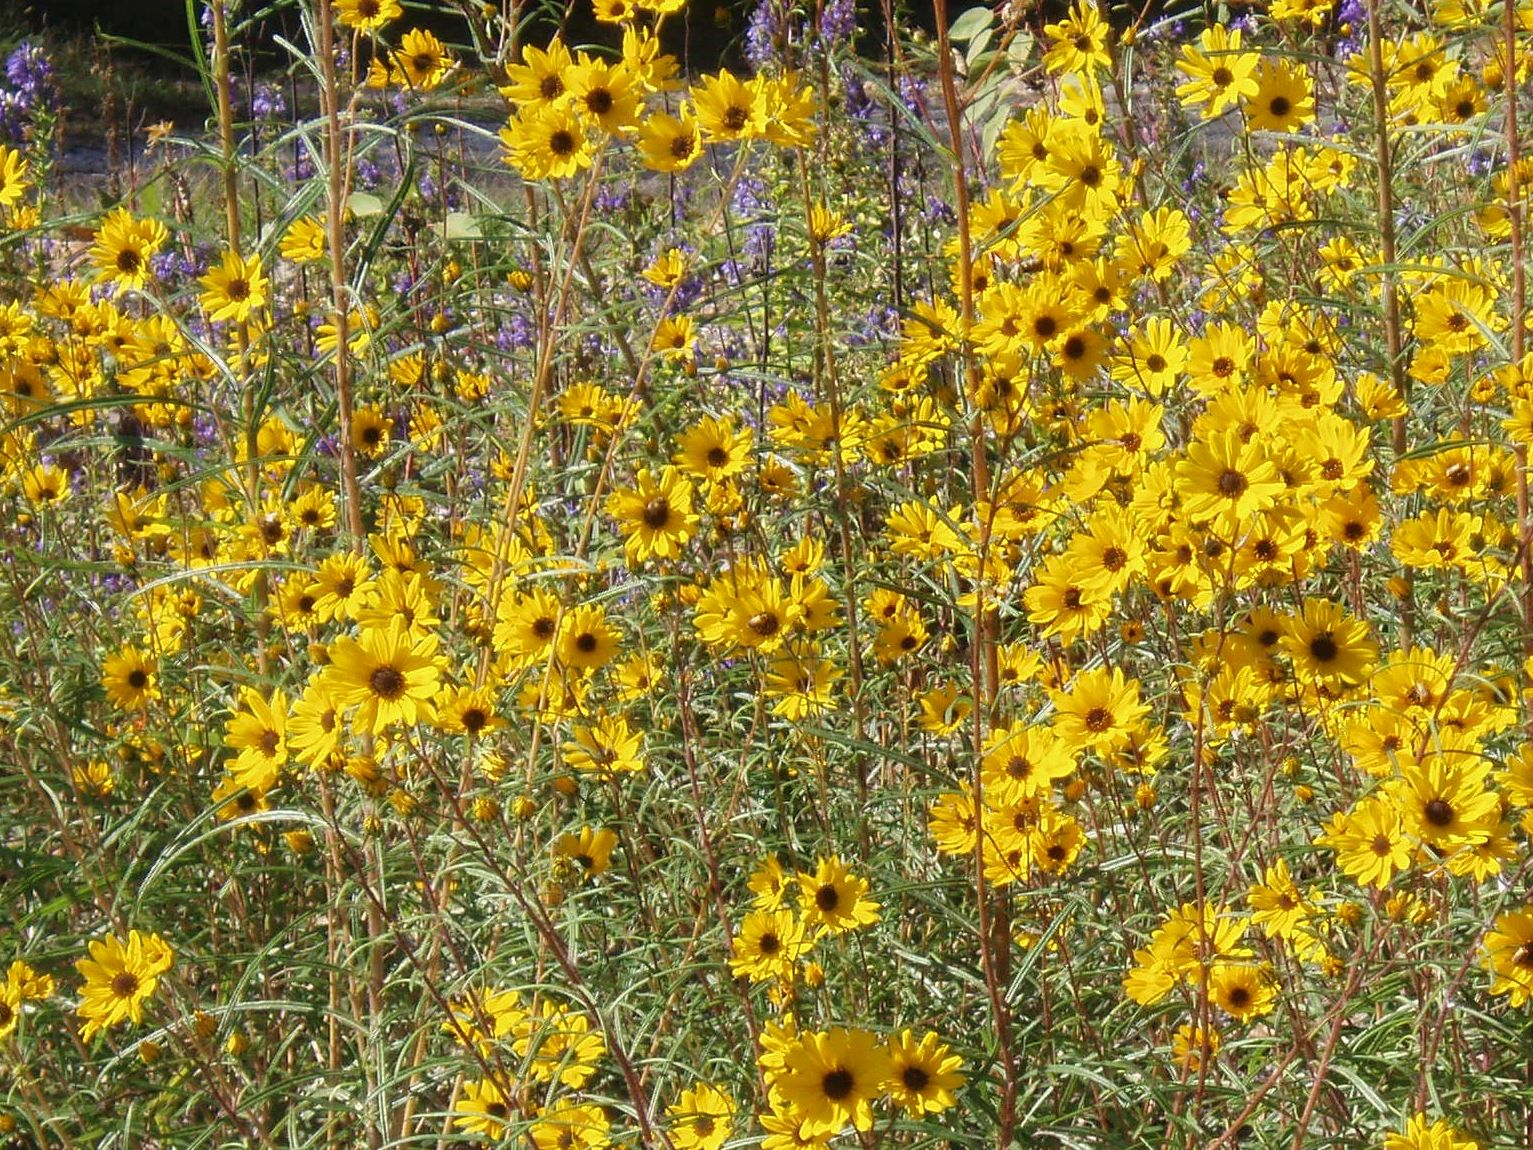 "{""blocks"":[{""key"":""4k6fj"",""text"":""Helianthus angustifolius Swamp Sunflower -  potted plants email john@easywildflowers.com "",""type"":""unstyled"",""depth"":0,""inlineStyleRanges"":[],""entityRanges"":[],""data"":{}}],""entityMap"":{}}"